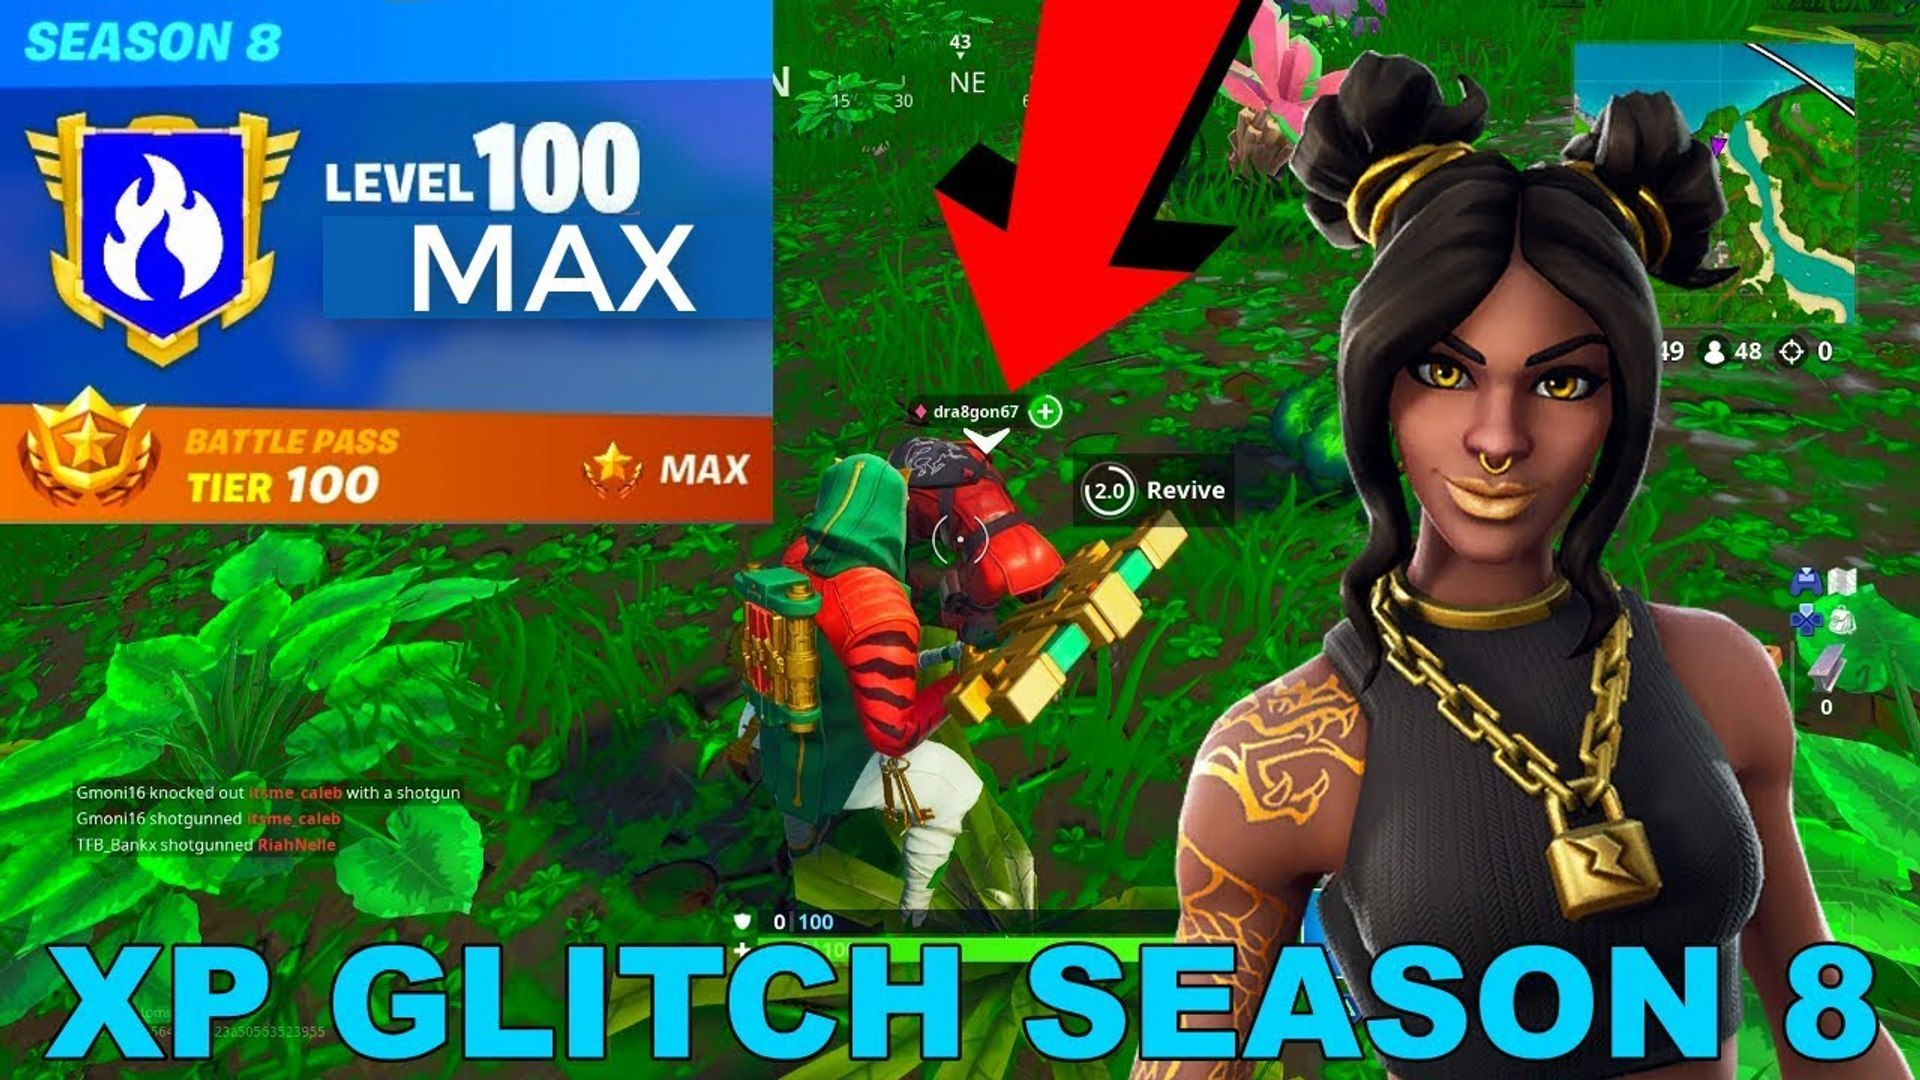 Massive Xp Glitch How To Level Up Fast In Fortnite Season 8 Video Dailymotion A fortnite glitch affecting experience is allowing players to complete all the challenges in the game quickly and easily by heading into creative mode, making for a massive windfall of xp. massive xp glitch how to level up fast in fortnite season 8